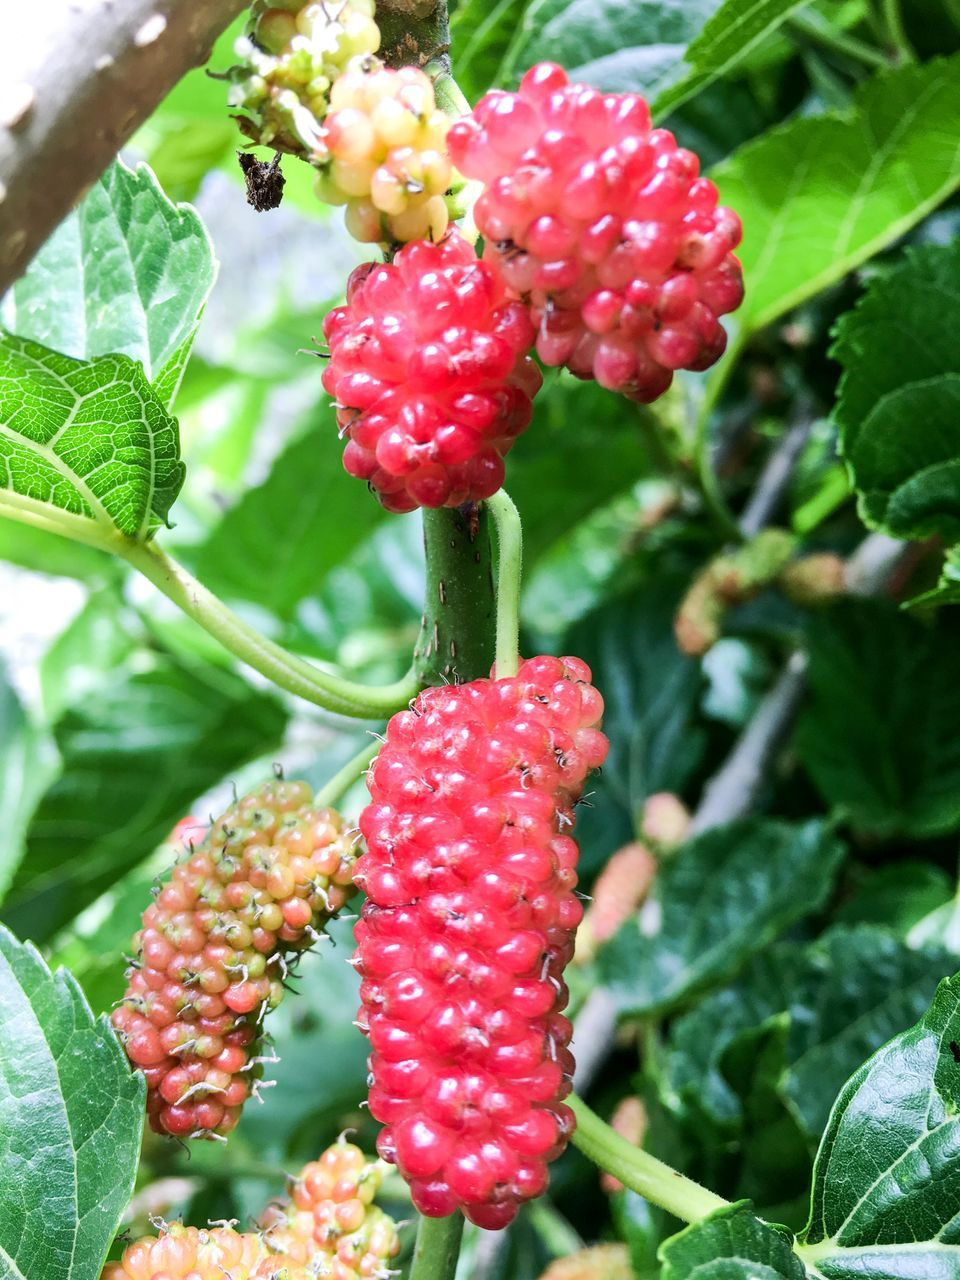 growth, fruit, red, food and drink, growing, berry fruit, nature, freshness, leaf, plant, no people, beauty in nature, outdoors, day, focus on foreground, green color, close-up, tree, food, healthy eating